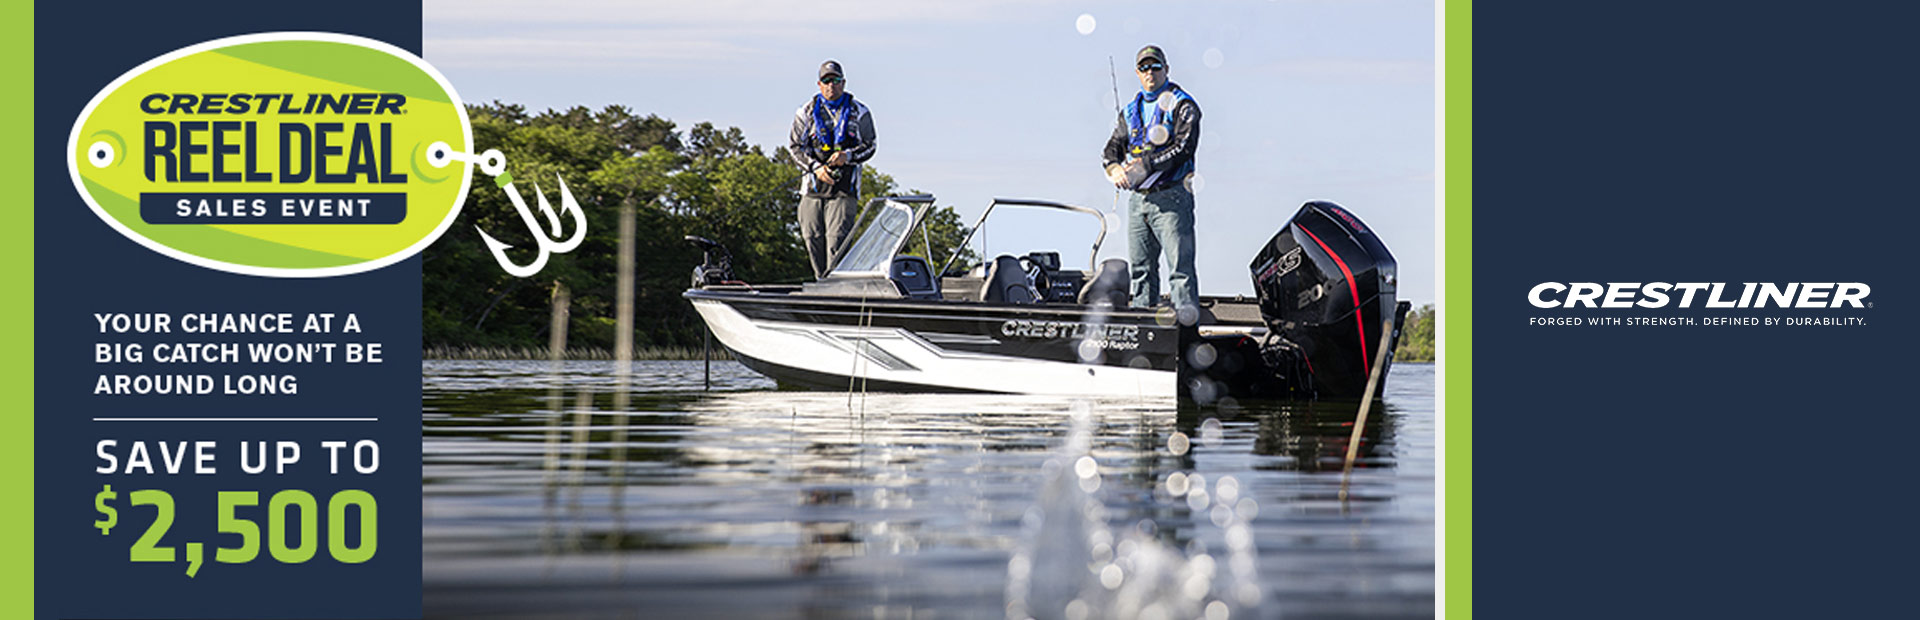 Crestliner: Reel Deal Sales Event